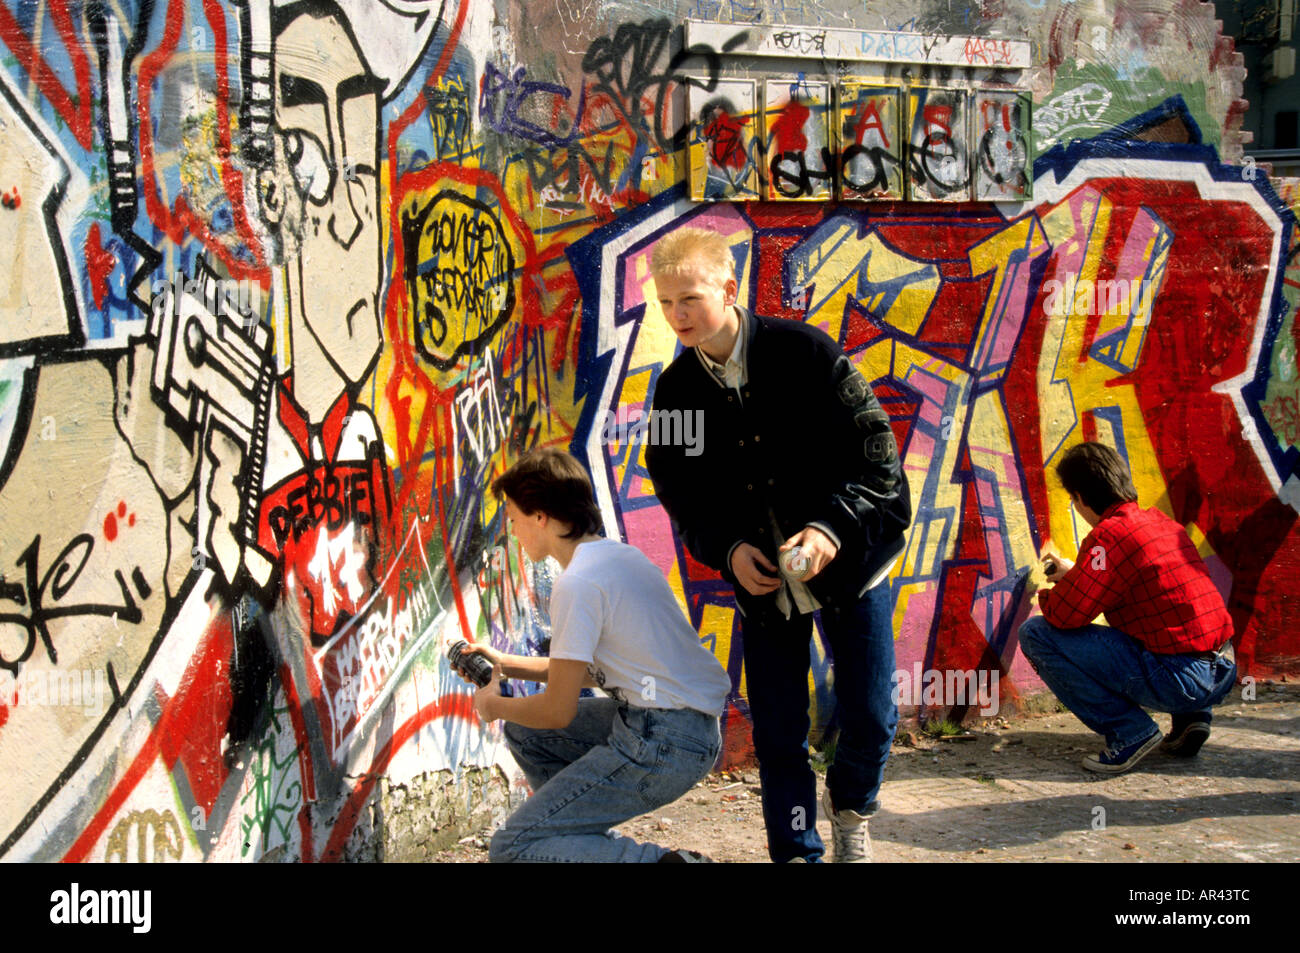 Leiden graffiti mural painting wall painting fresco art depiction picture portrayal netherlands - Stock Image